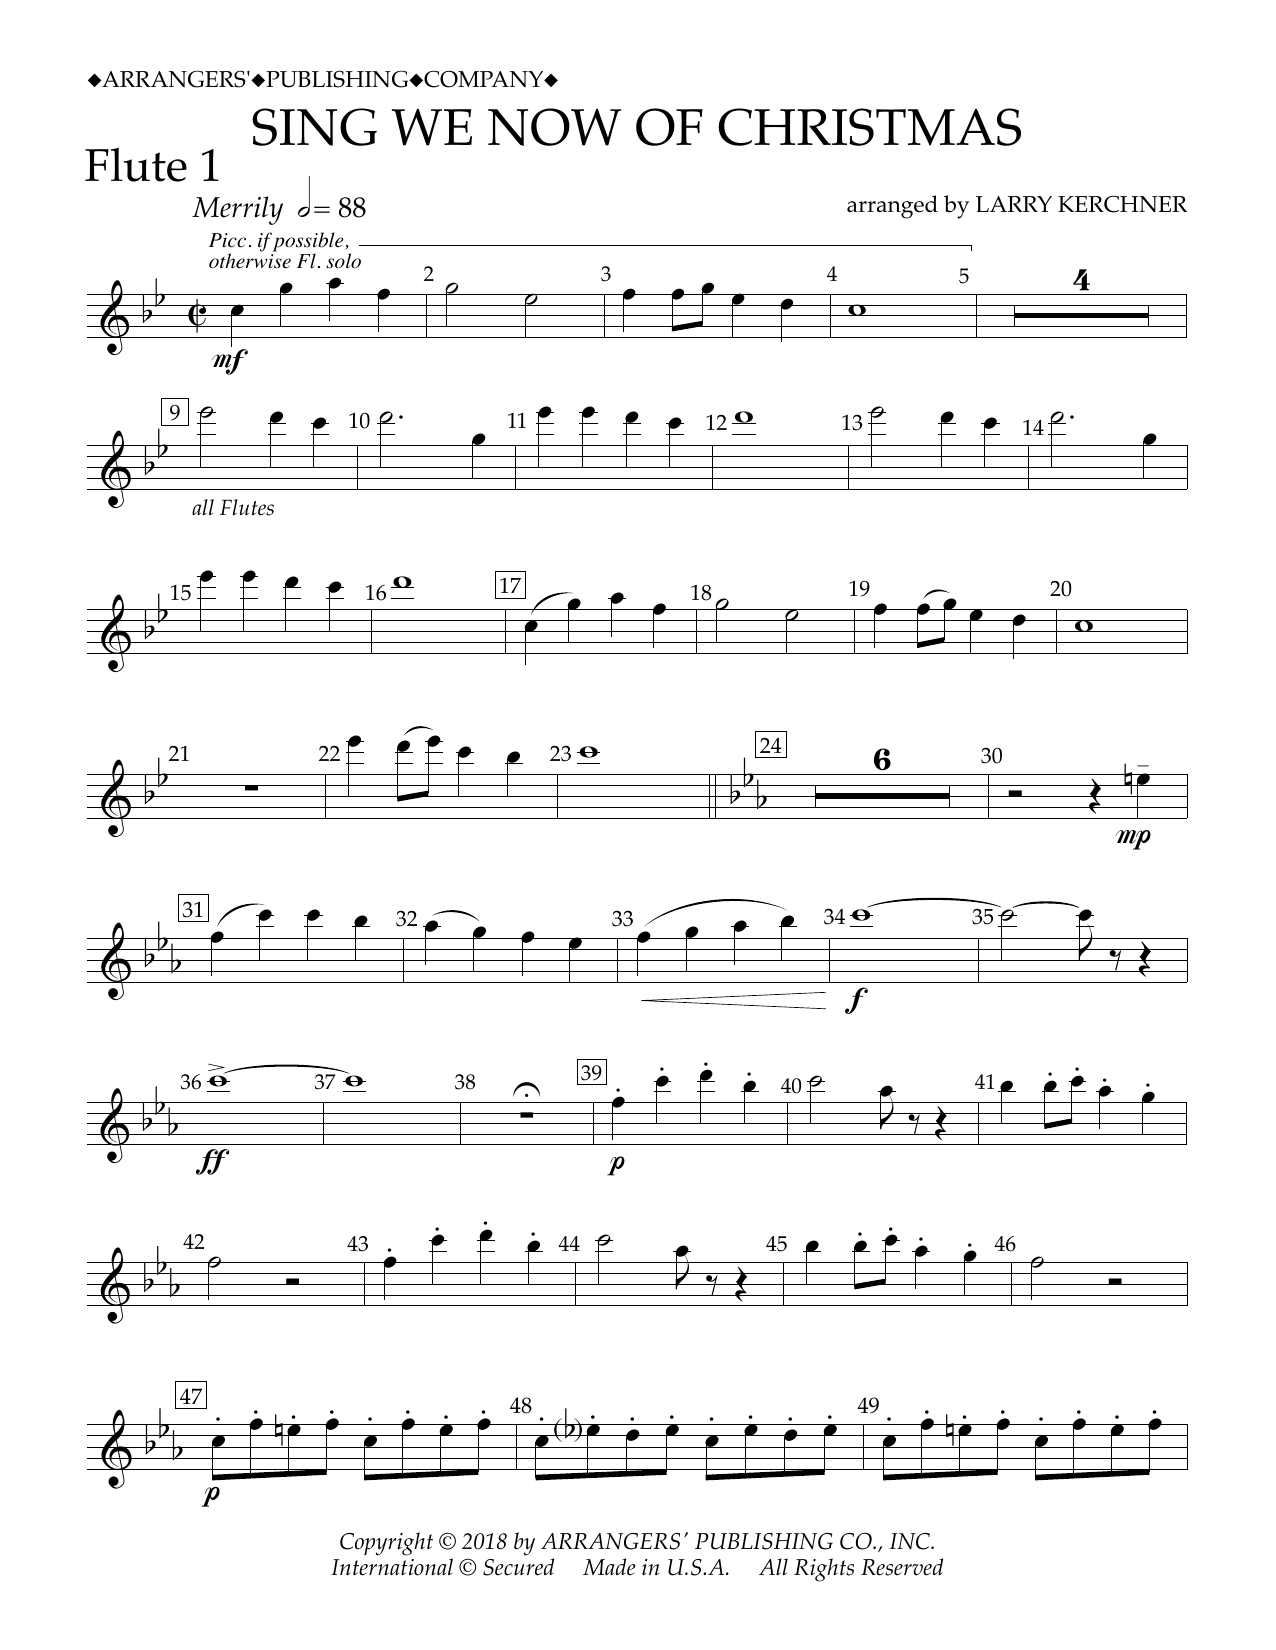 Sing We Now Of Christmas.Sing We Now Of Christmas Arr Larry Kerchner Flute 1 By Traditional French Carol Concert Band Digital Sheet Music